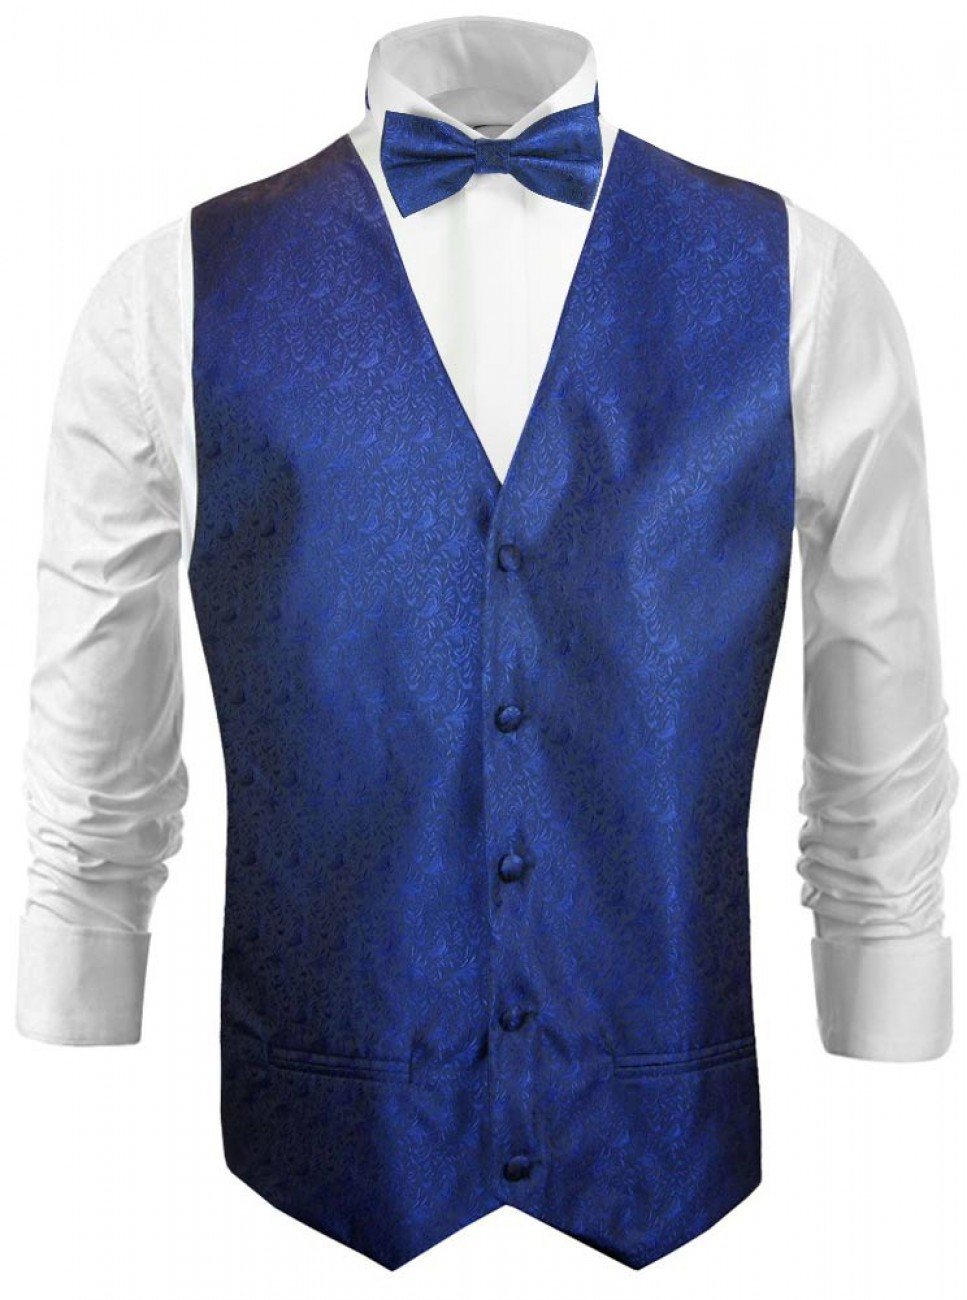 Wedding vest waistcoat royal blue